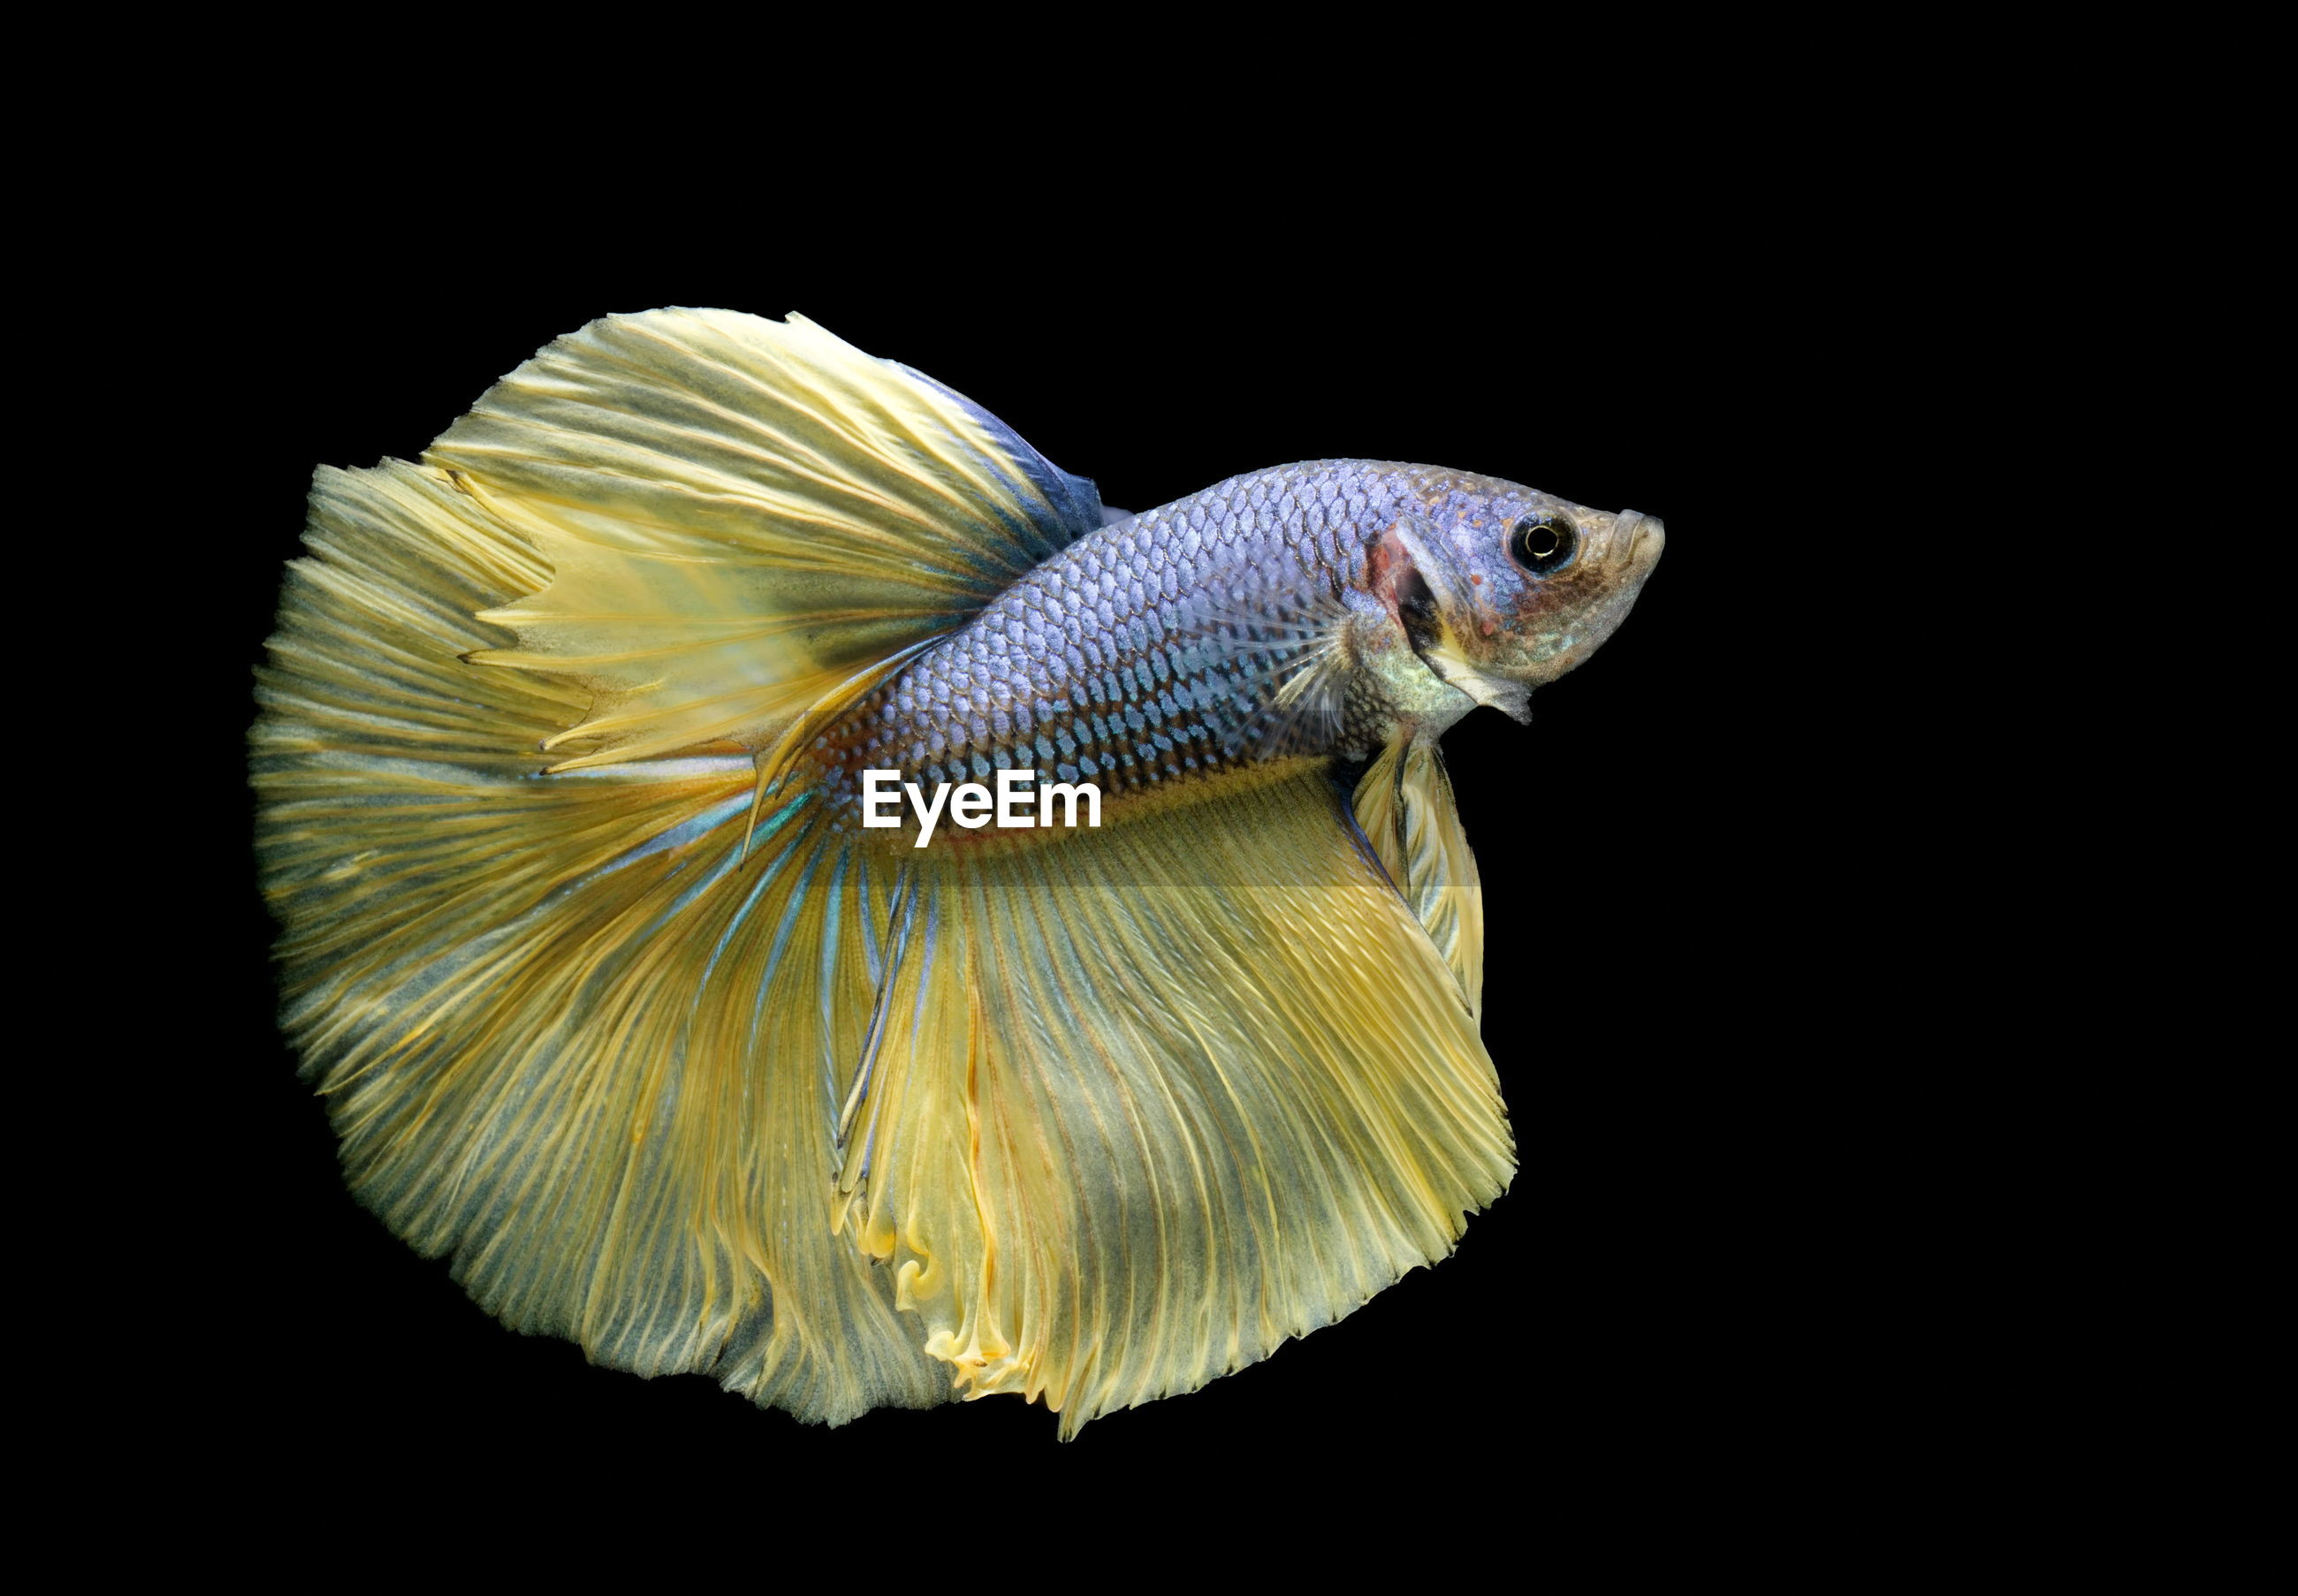 Siamese fighting fish, betta splendens,yellew fish on a black background, halfmoon betta,